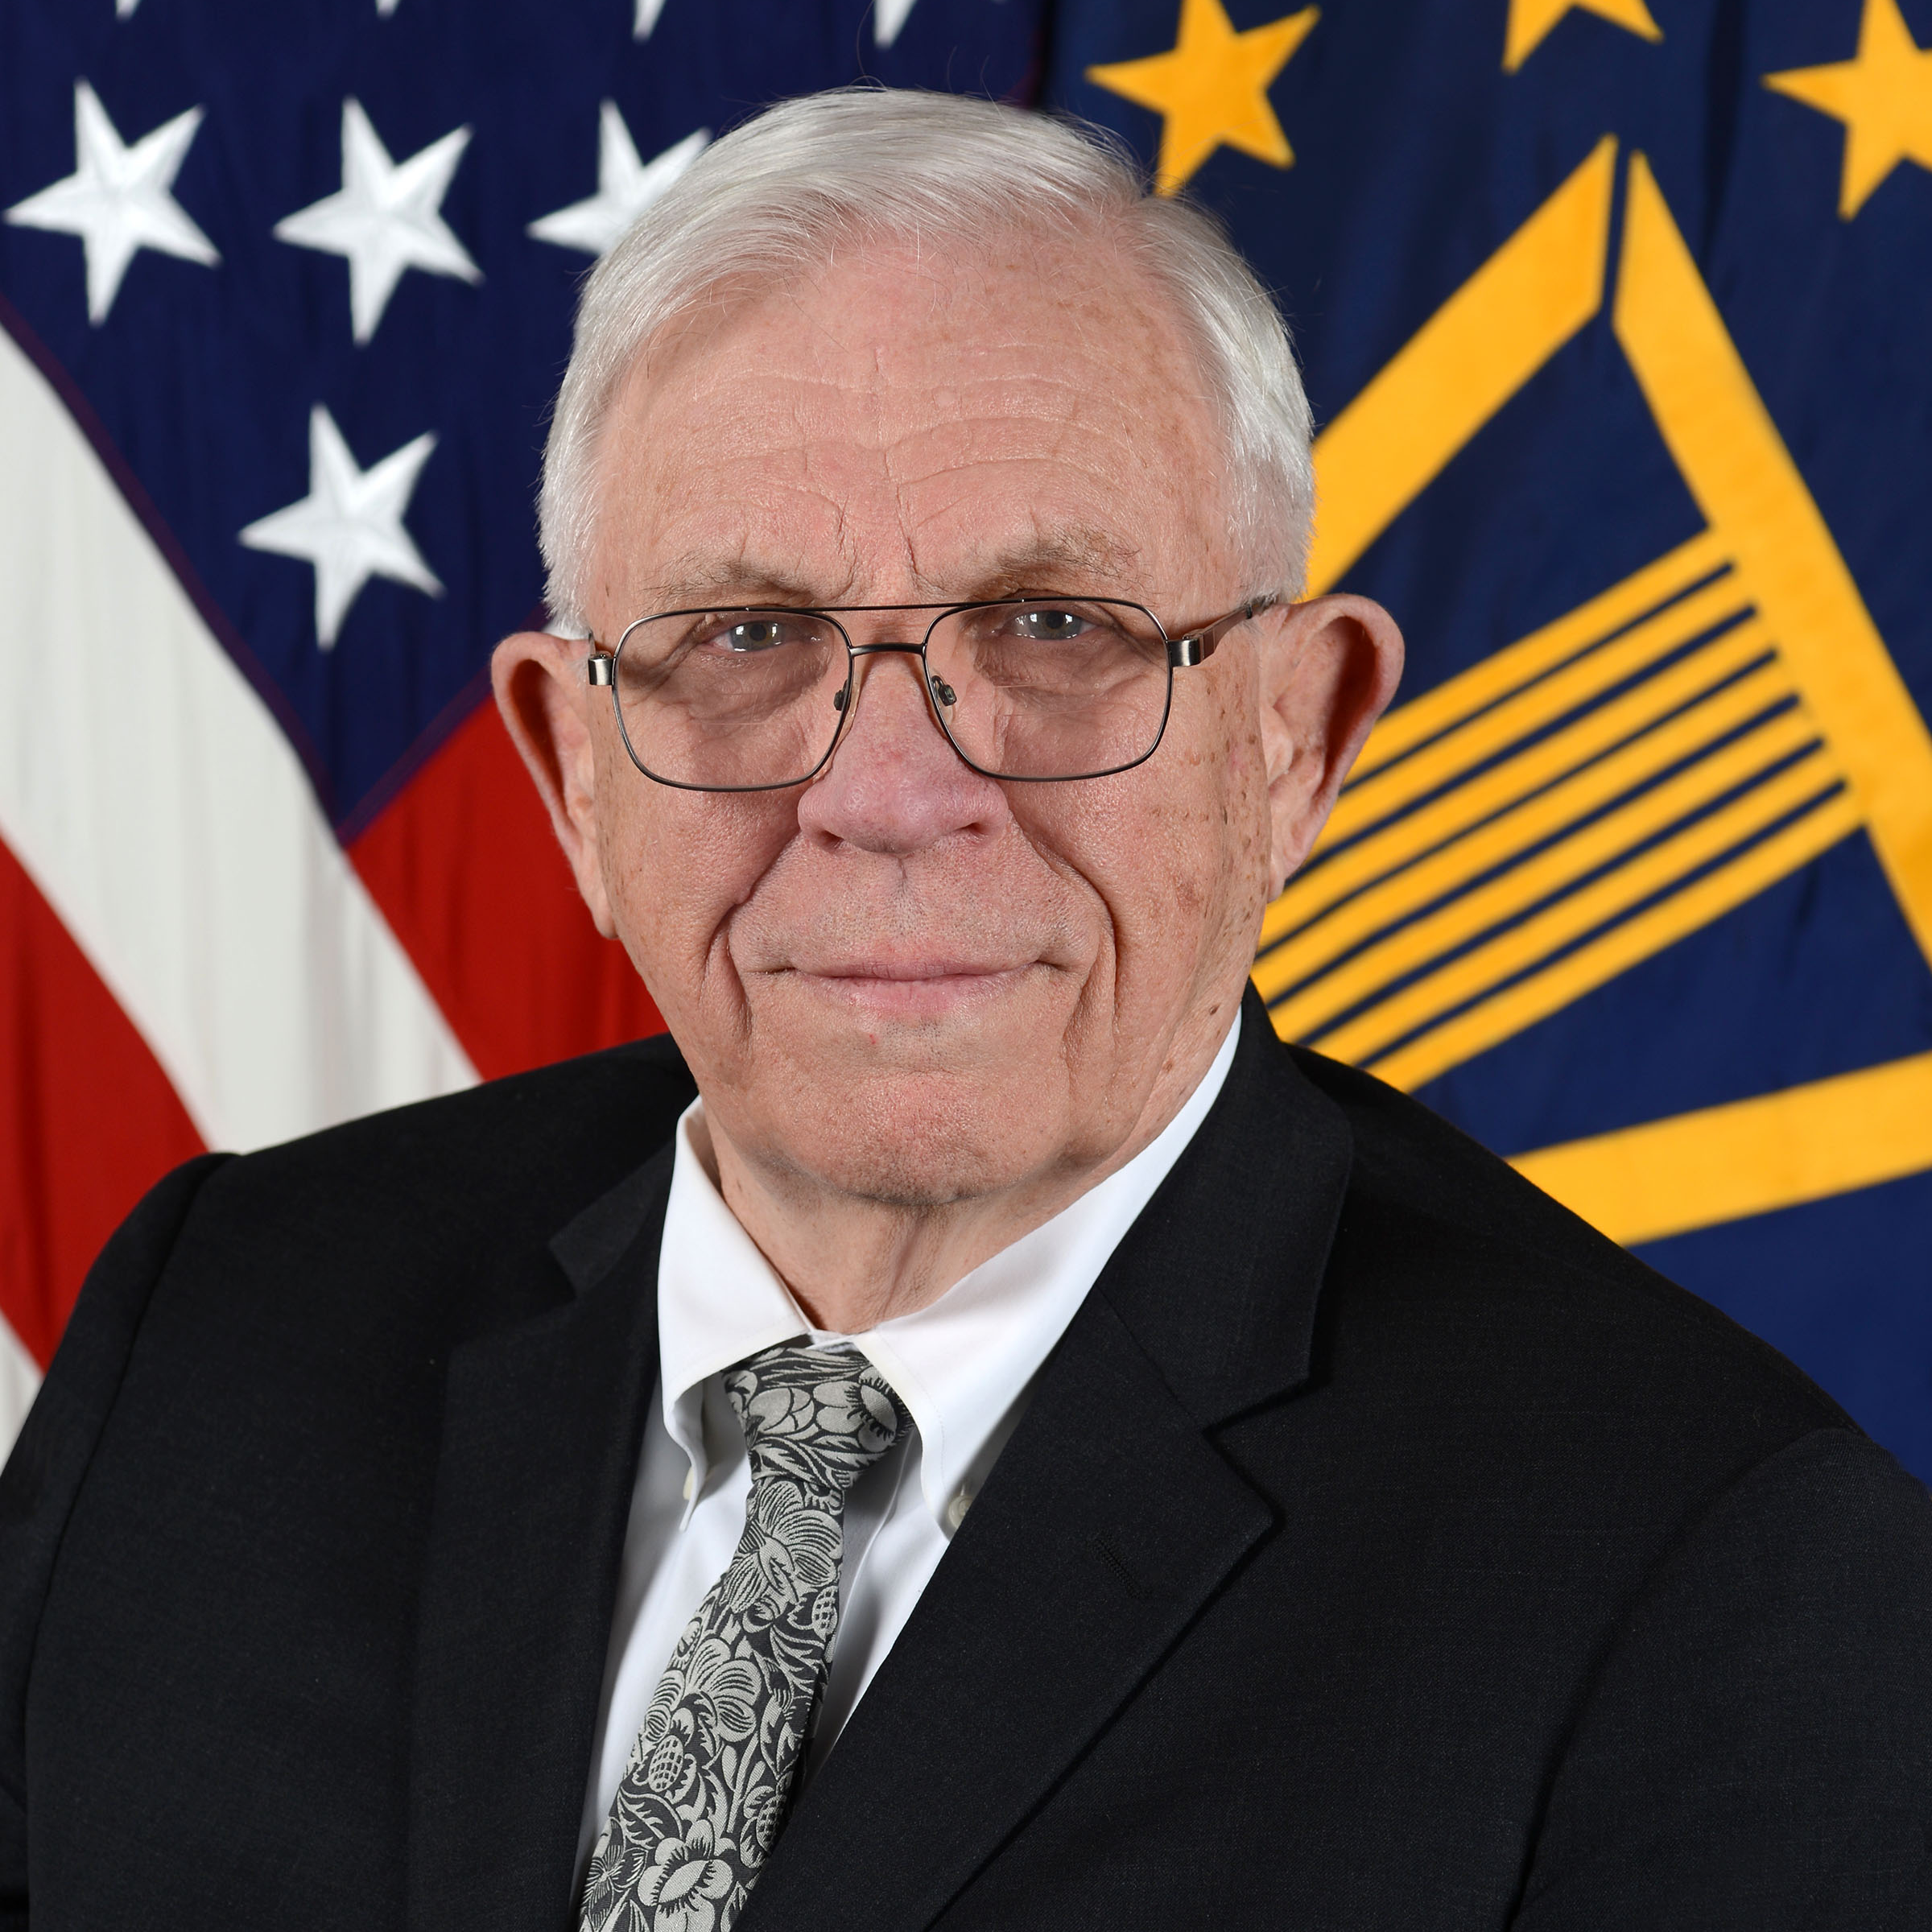 Dr Charles Perkins, Dr. Charles W. Perkins, Principal Deputy, Emerging Capability & Prototyping at Office of the Under Secretary of Defense for Research and Engineering